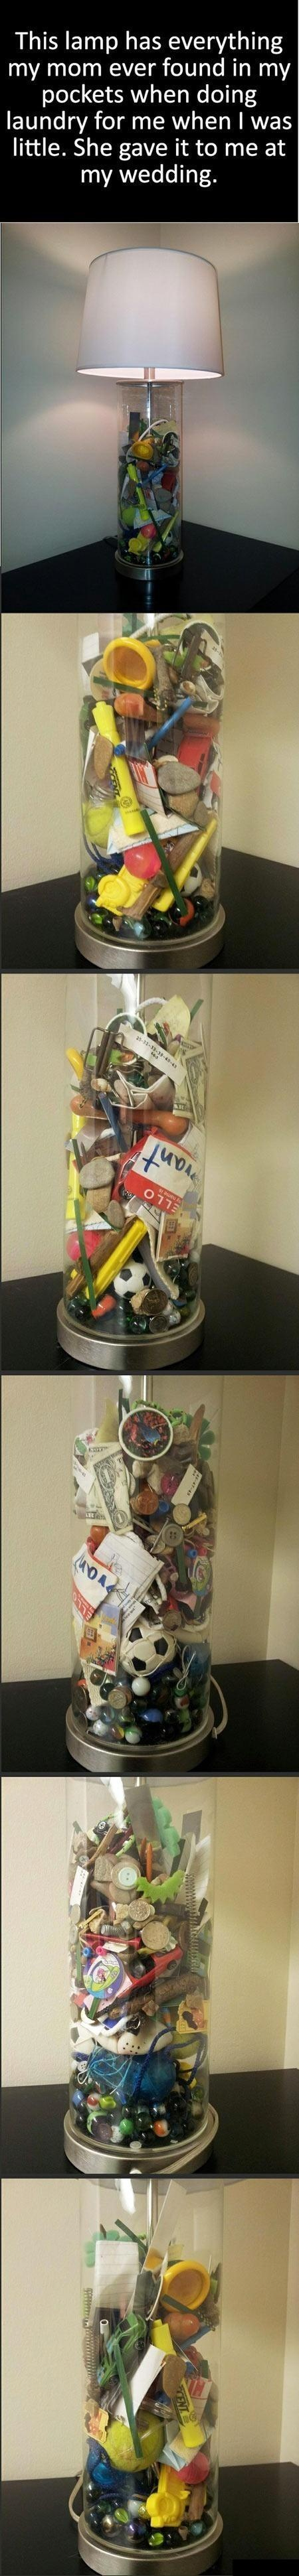 What a great idea, not for a wedding gift but maybe when they move out on their own one day:(